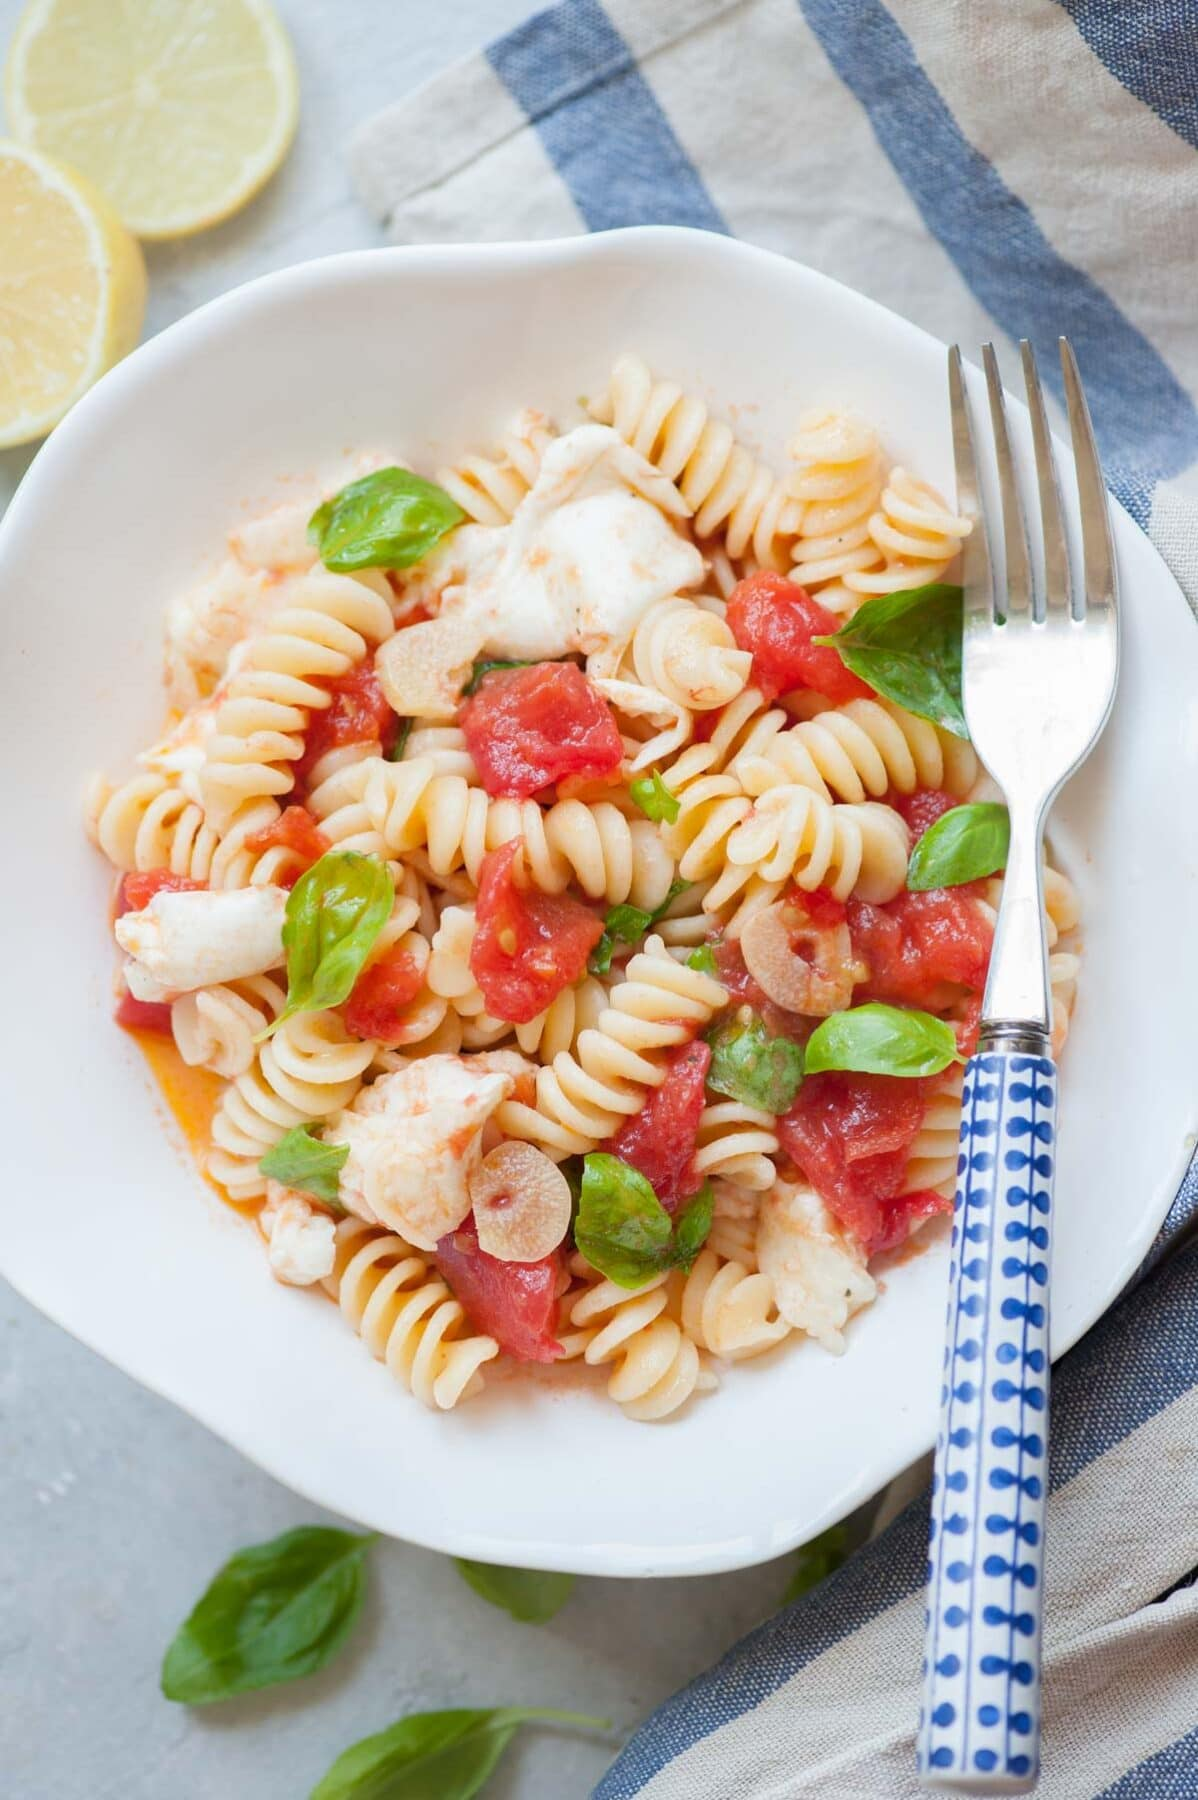 Pasta Caprese in a white bowl with blue fork on the side.